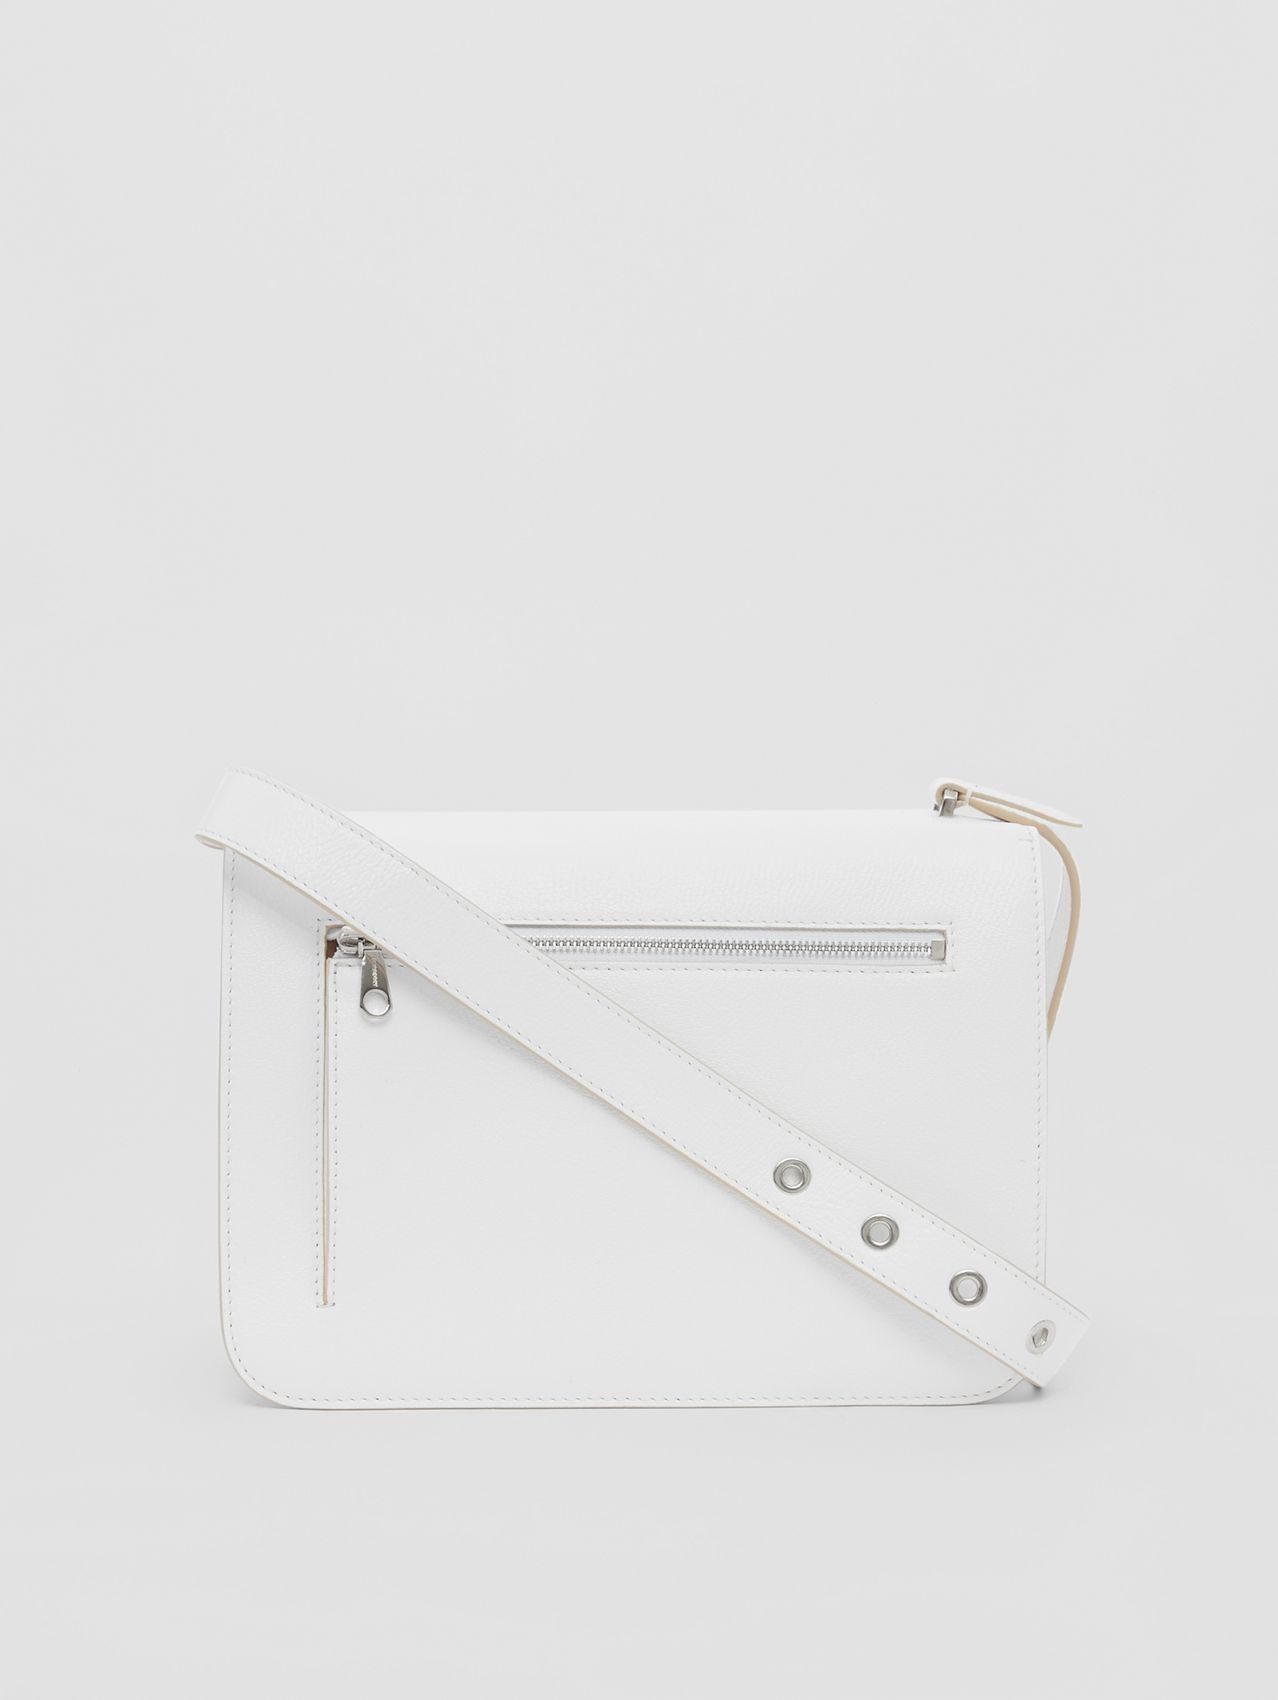 Medium Grainy Leather Alice Bag in Optic White